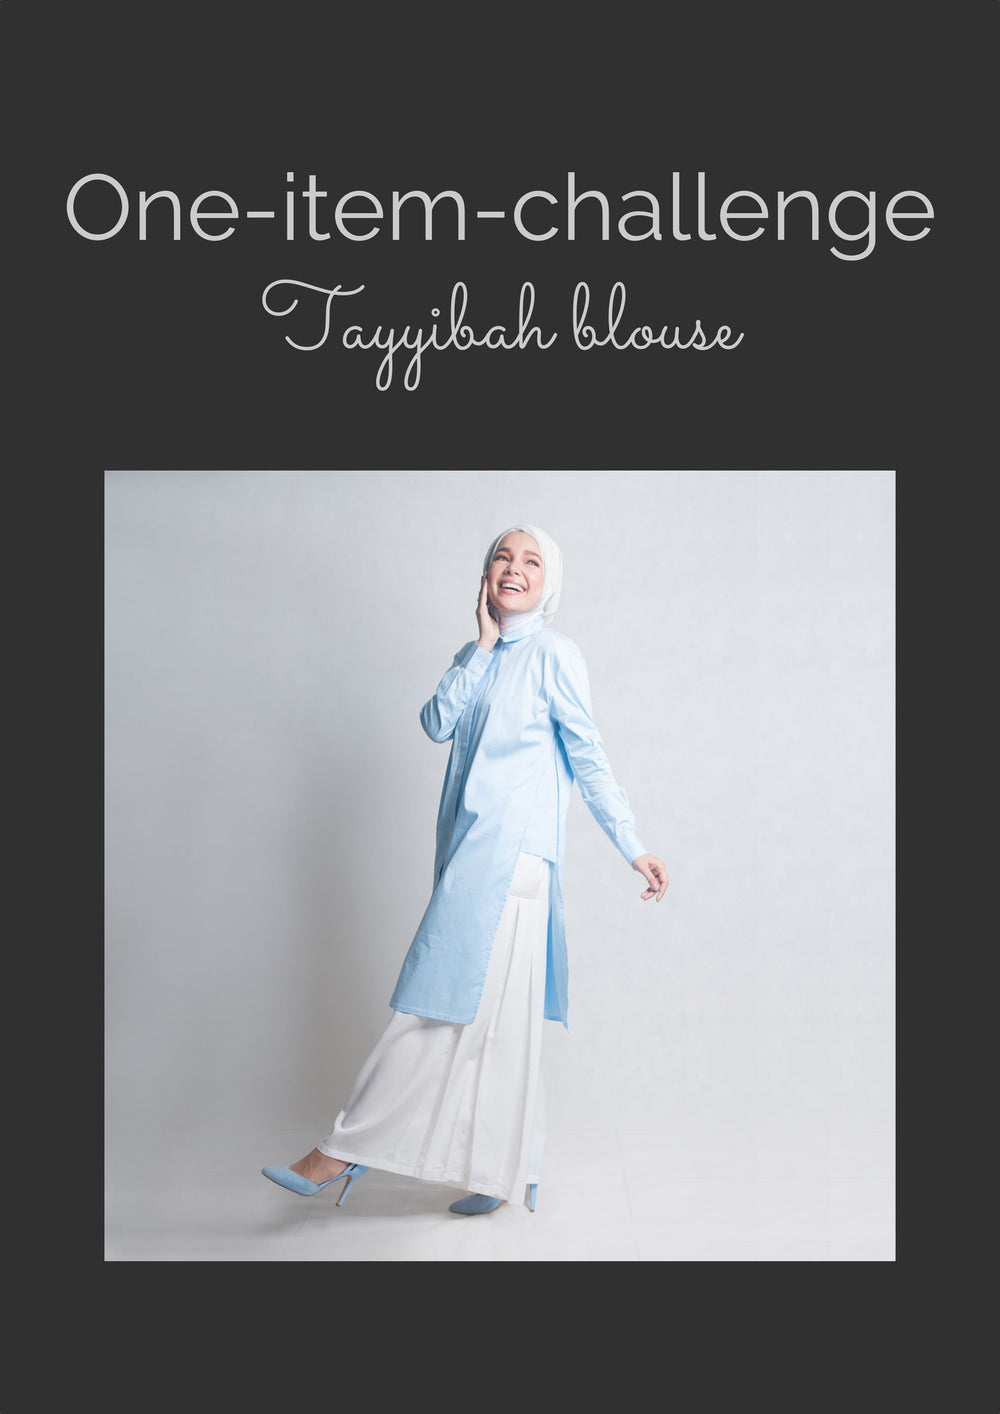 One item challenge - Tayyibah blouse